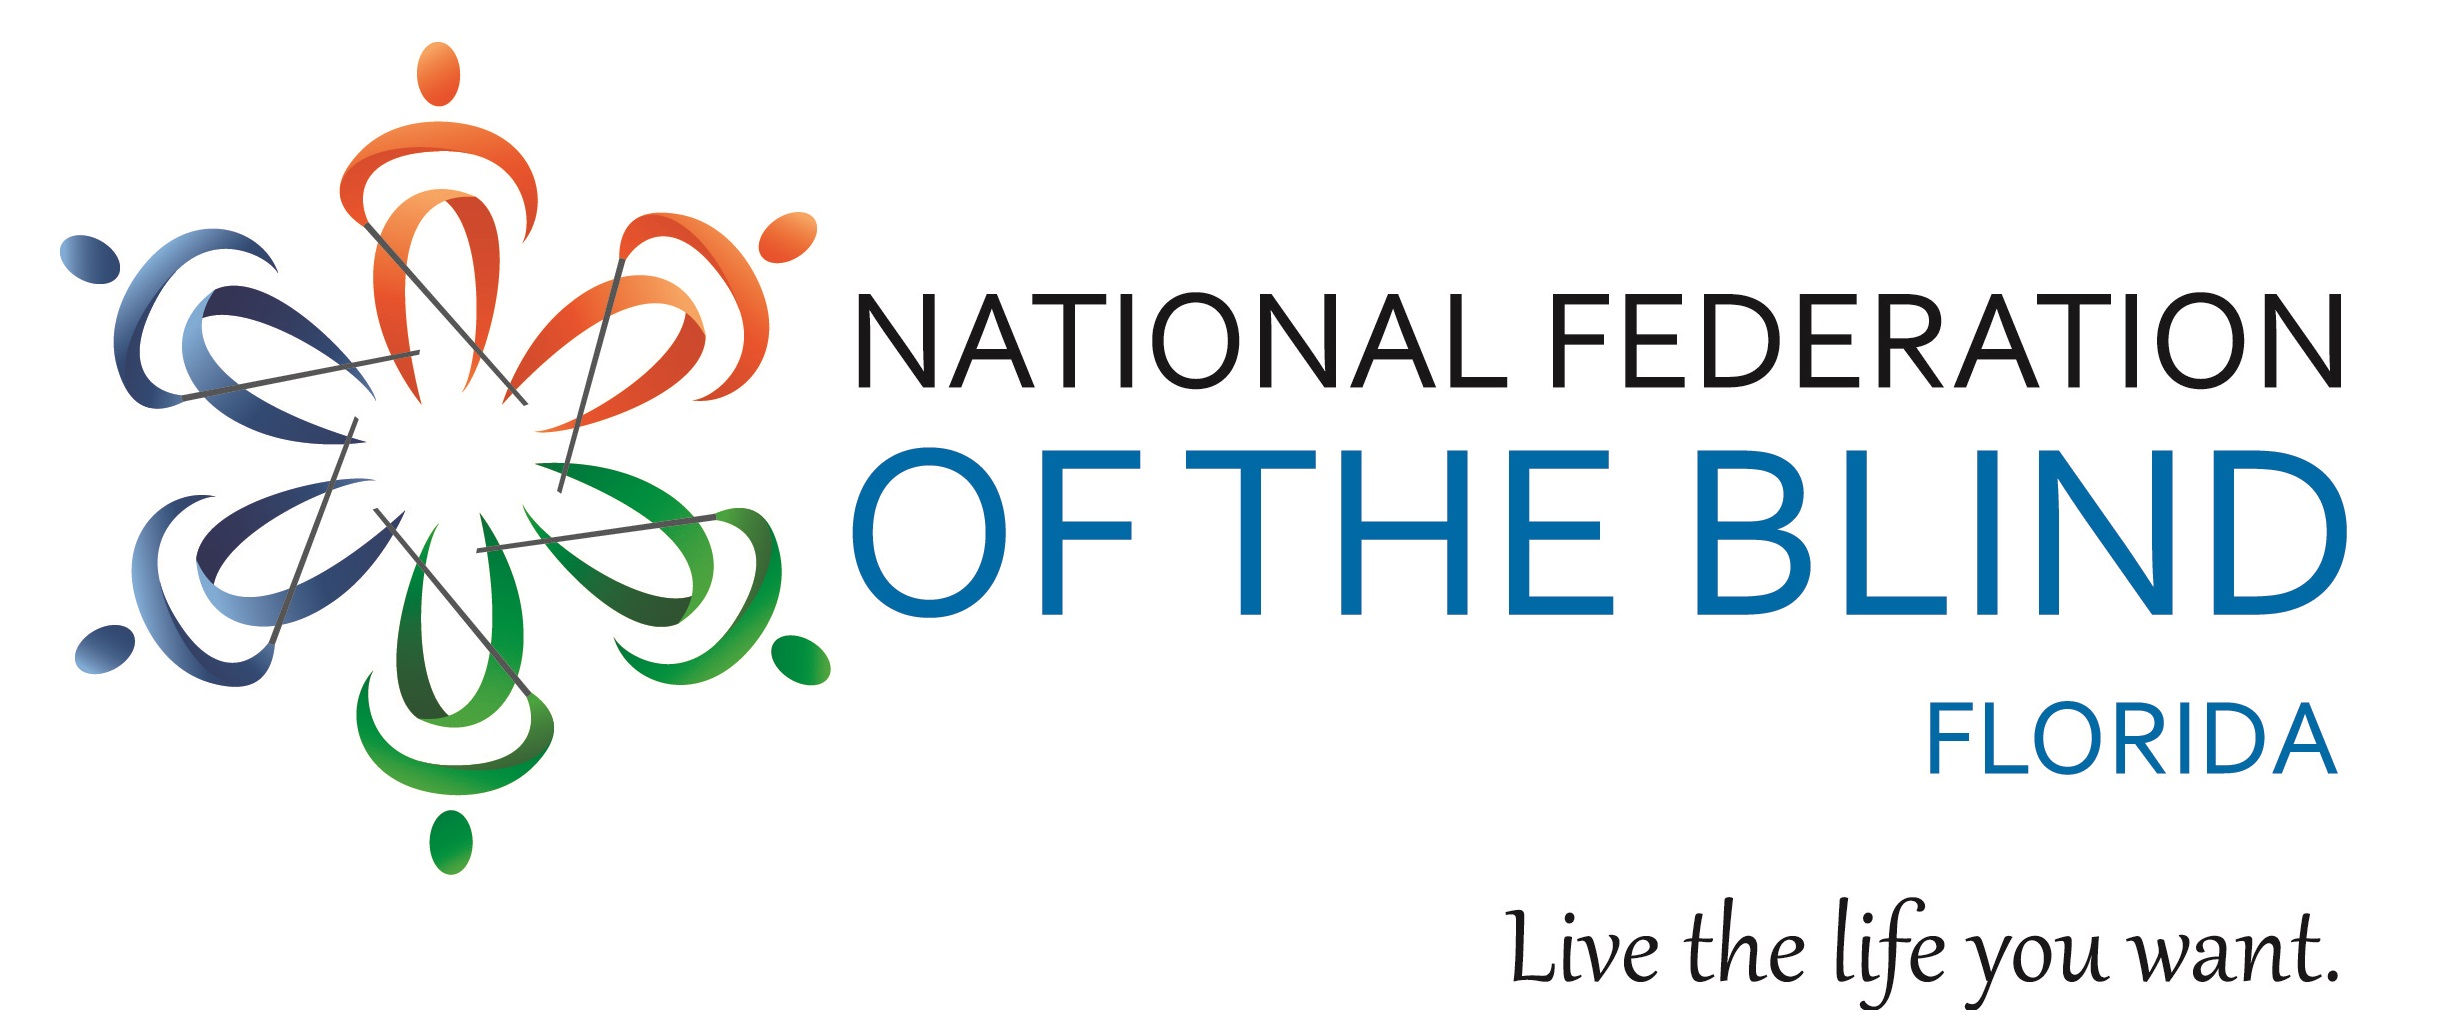 "Logo of the National Federation of the Blind of Florida with the tagline ""Live the life you want""."